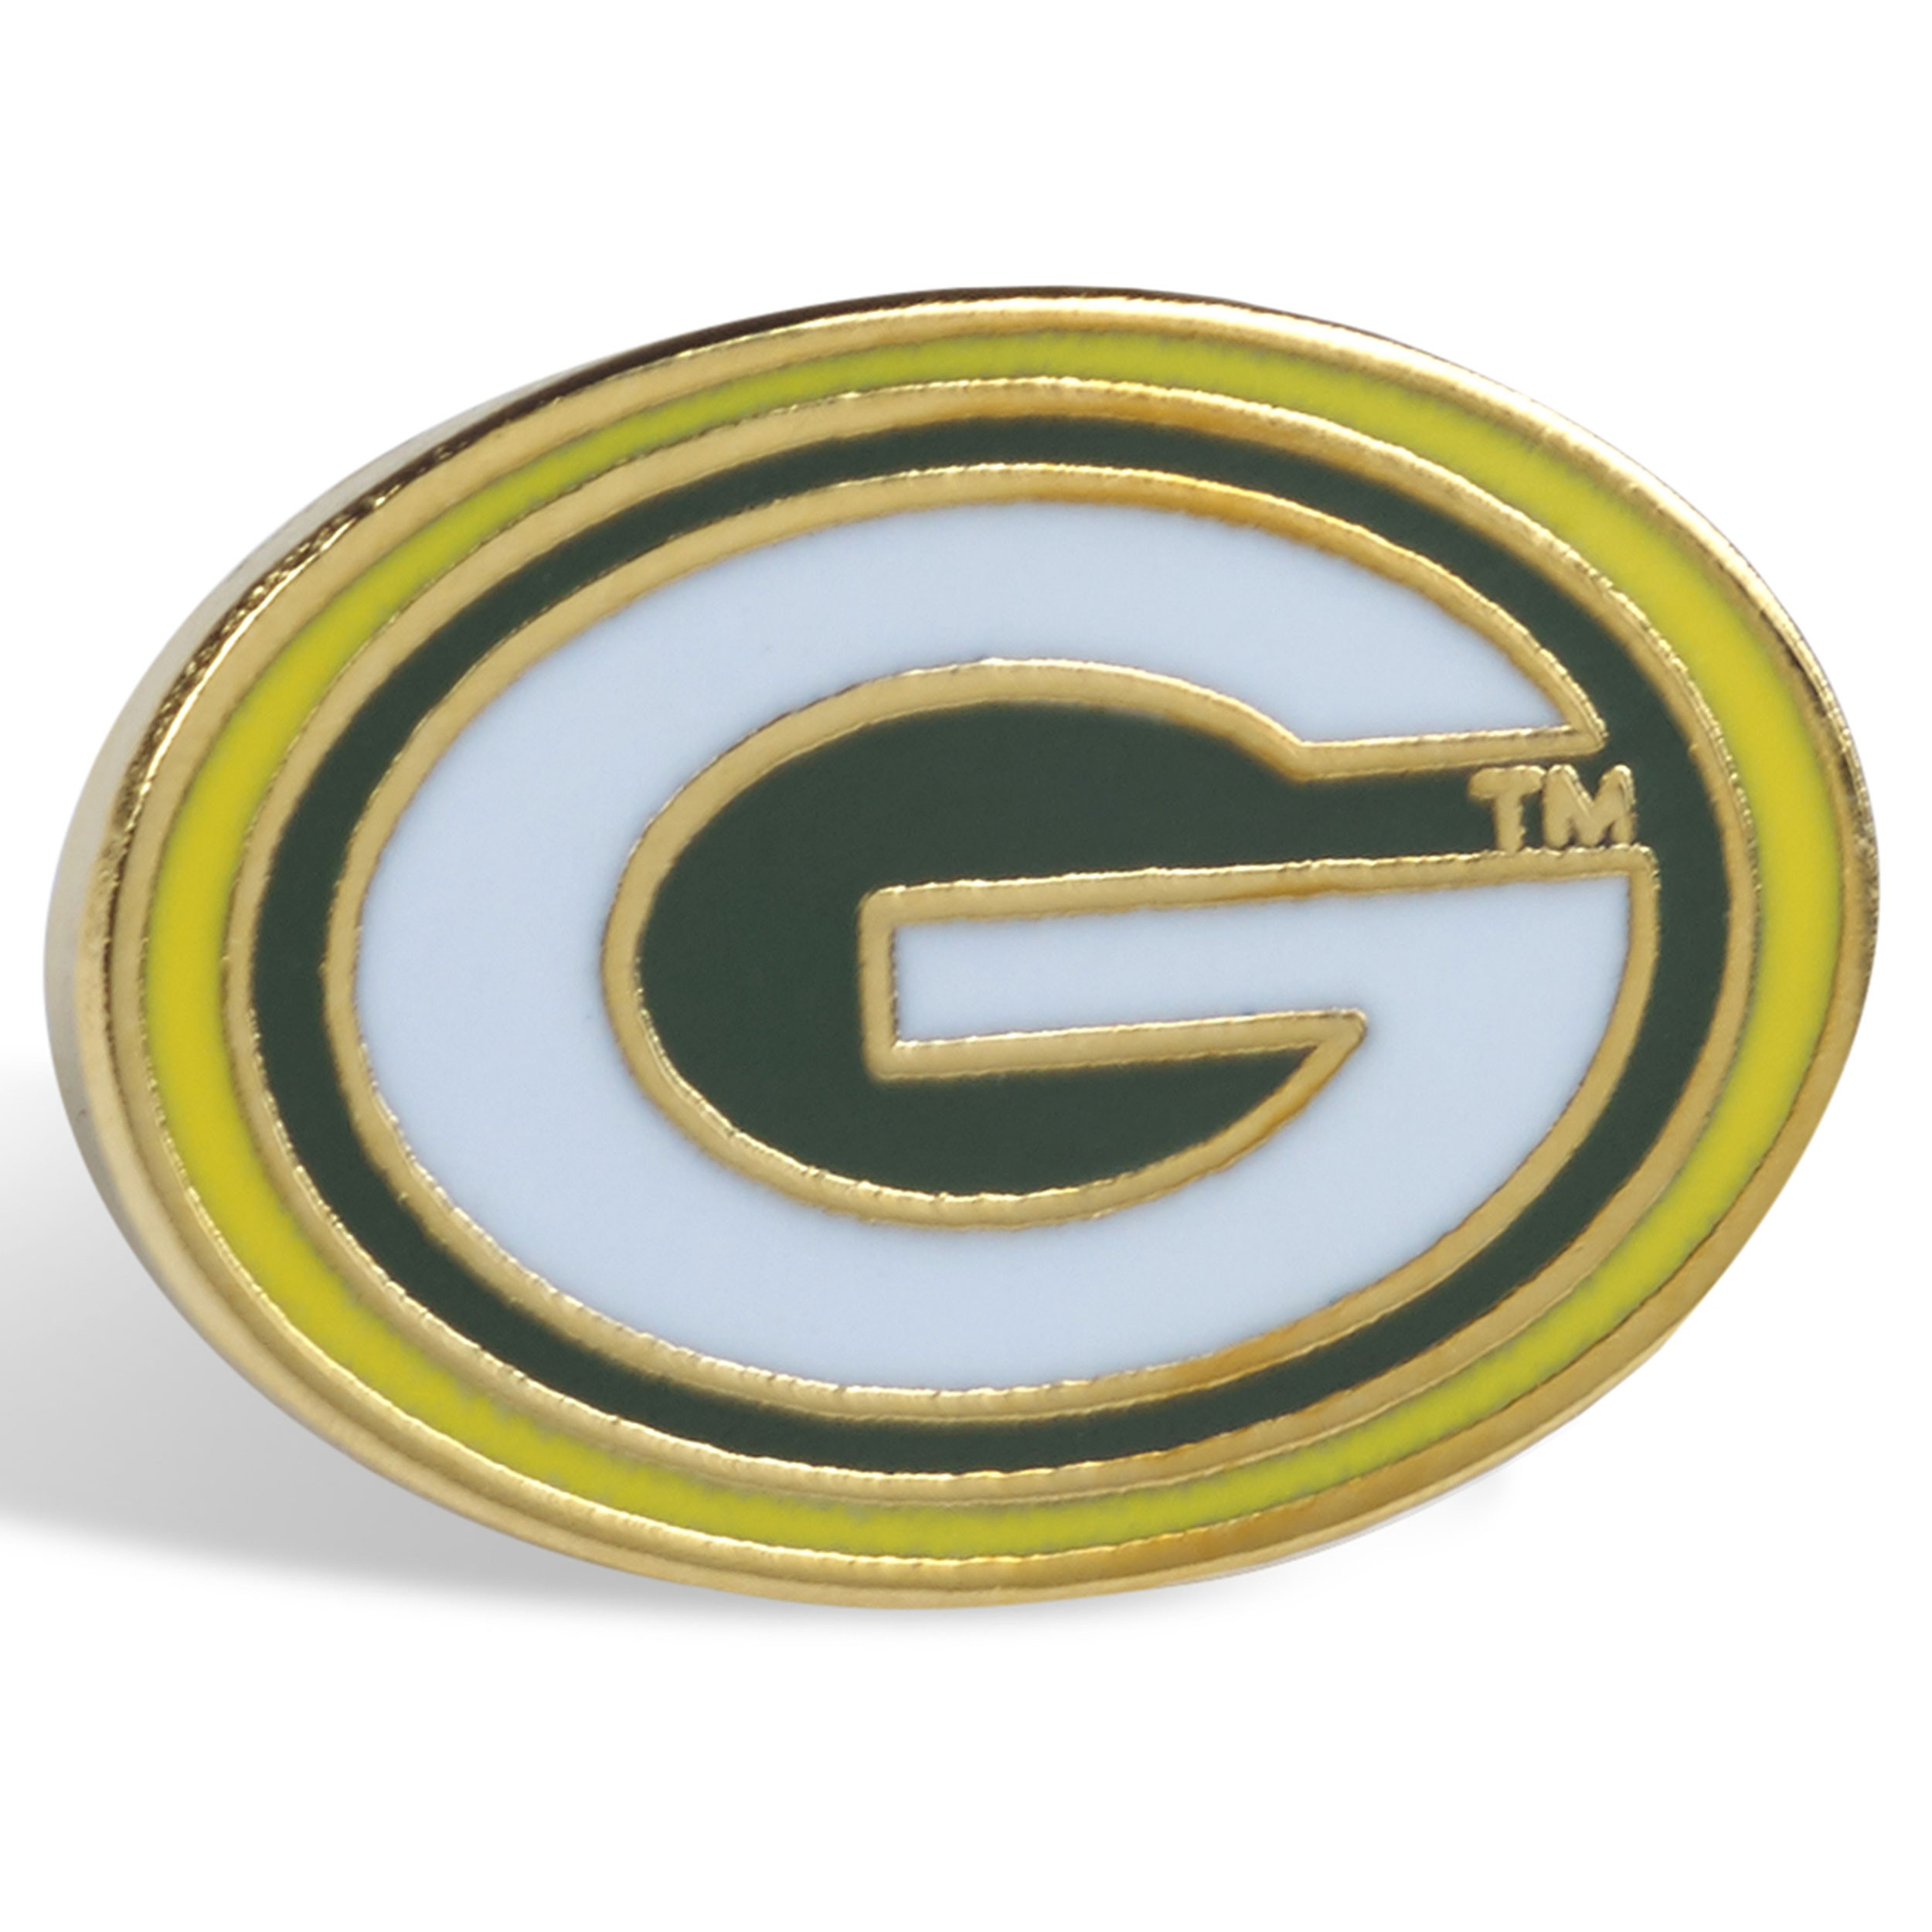 2500x2500 Green Bay Packers G Logo Pin